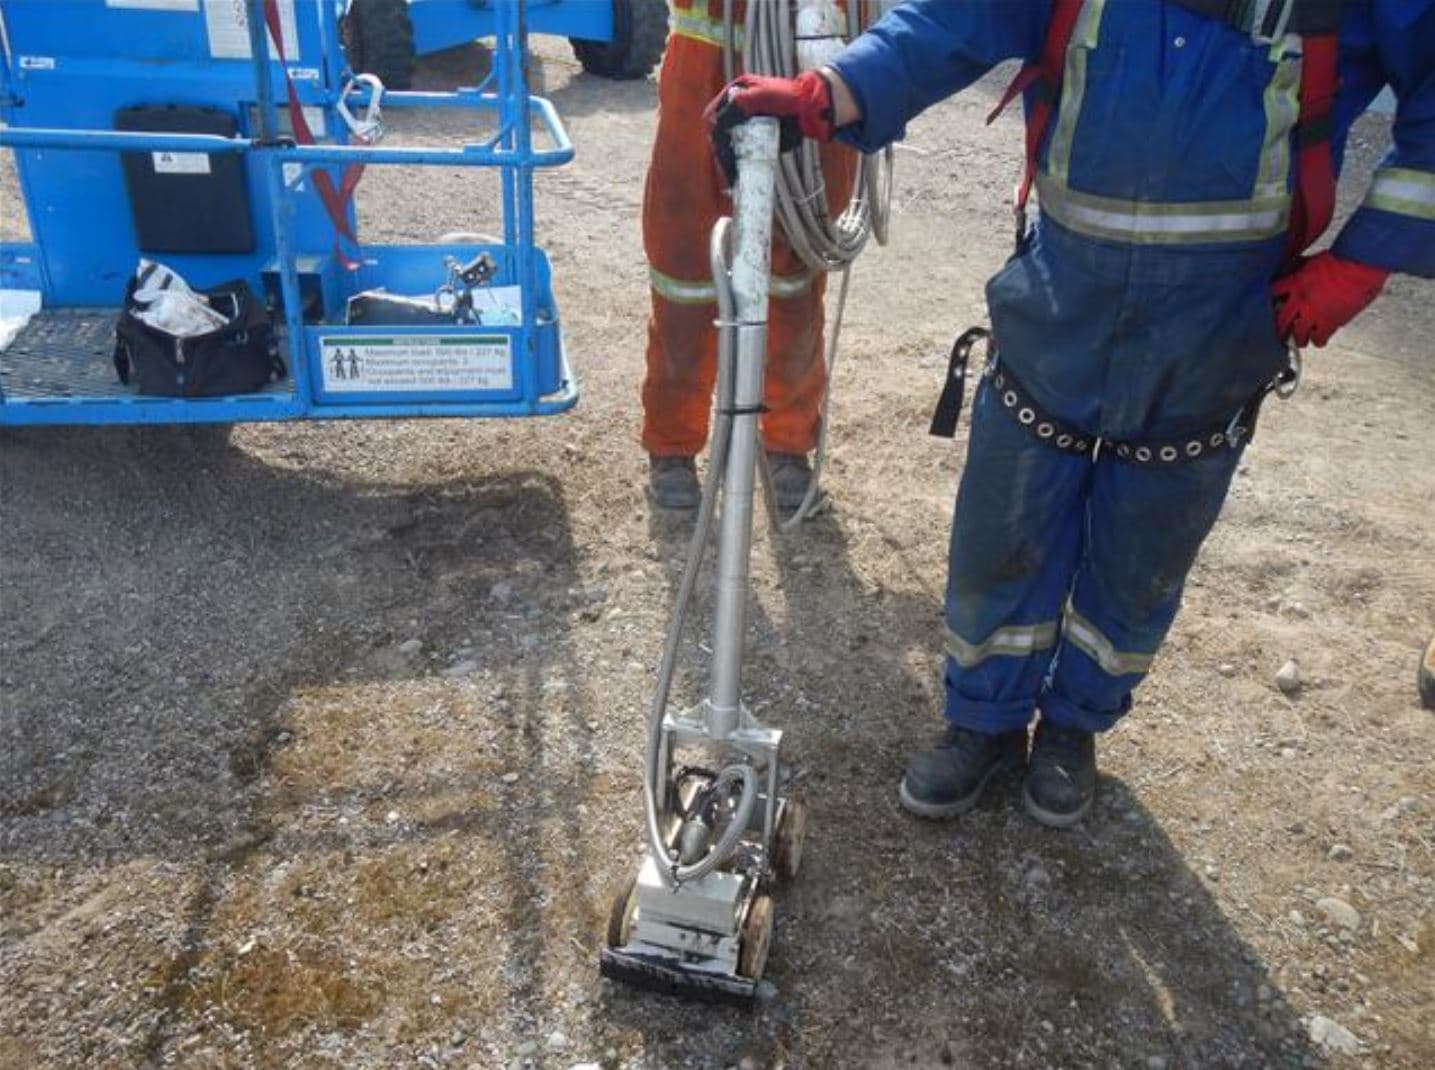 worker in full personal protective equipment holding the handle of the rimouski robot standing in a dirt path